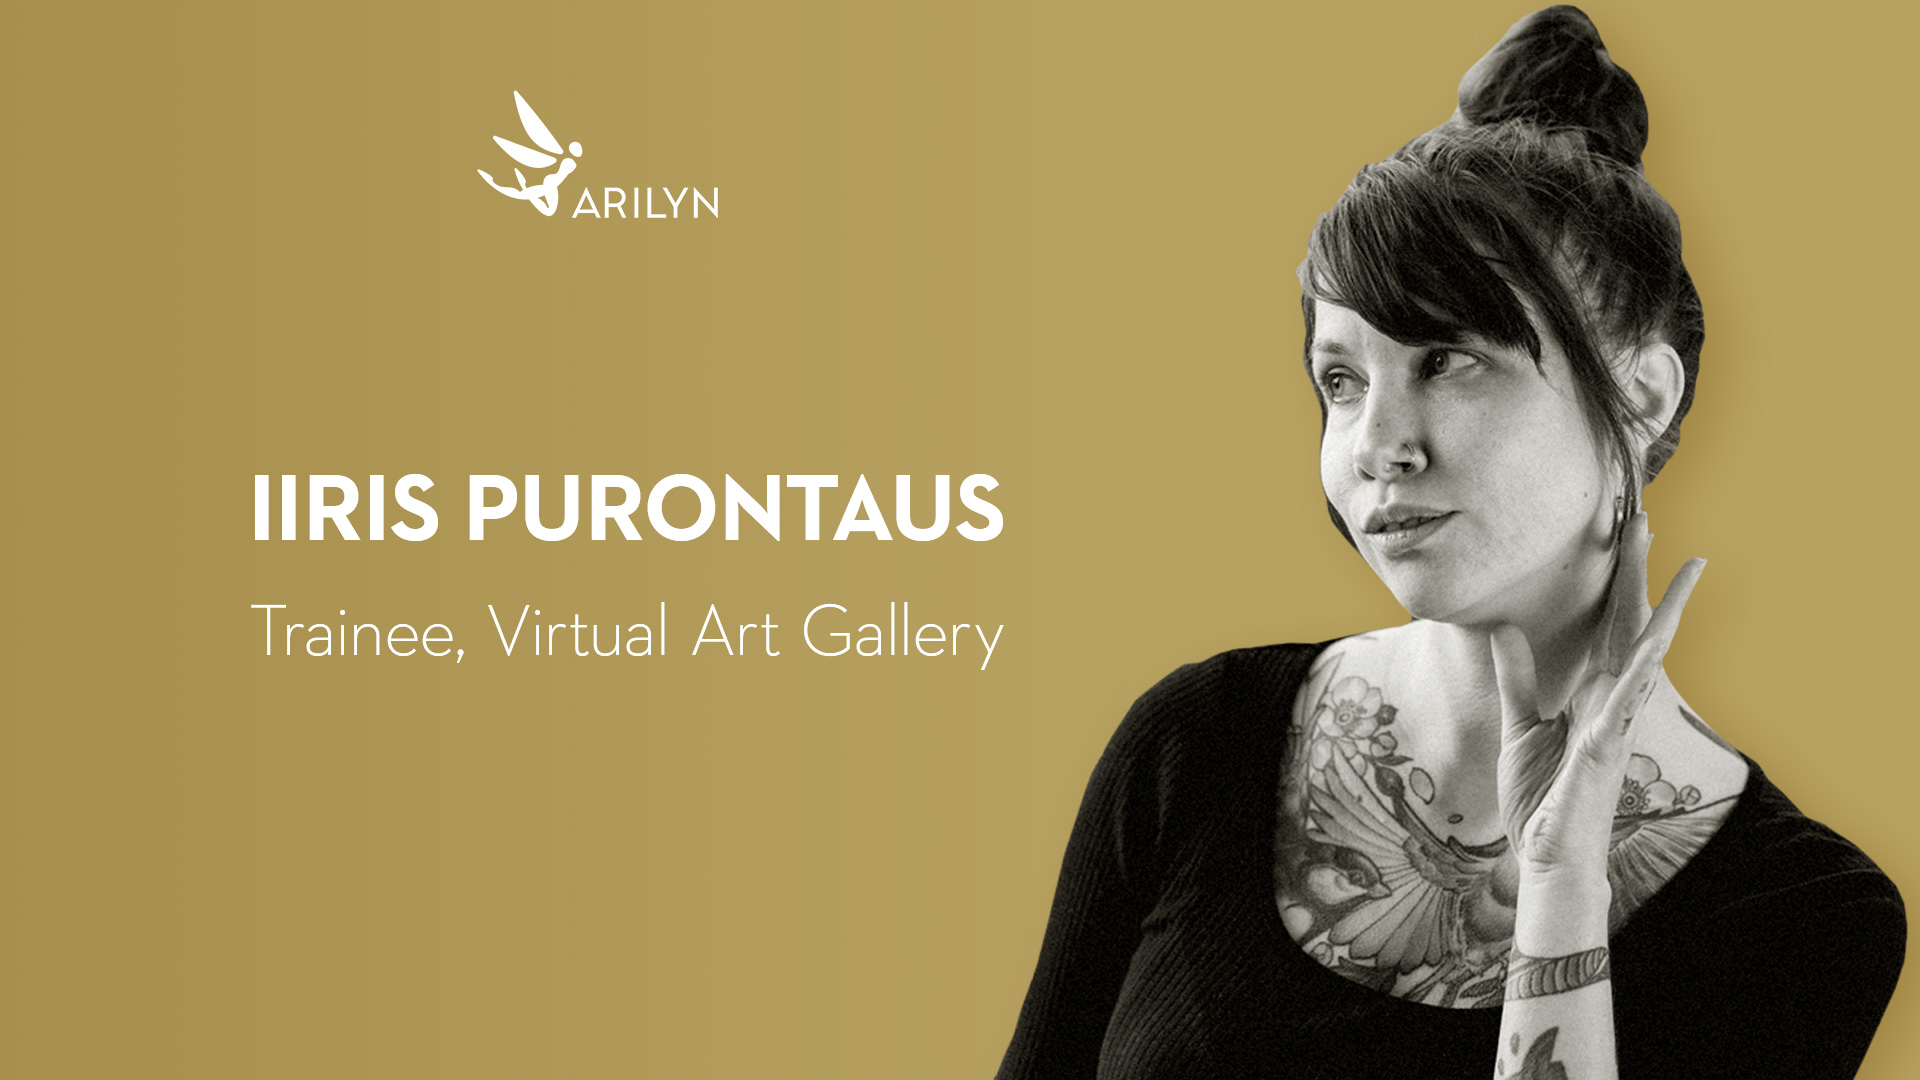 Get to know Arilyn - Iiris Purontaus, trainee for Virtual Art Gallery